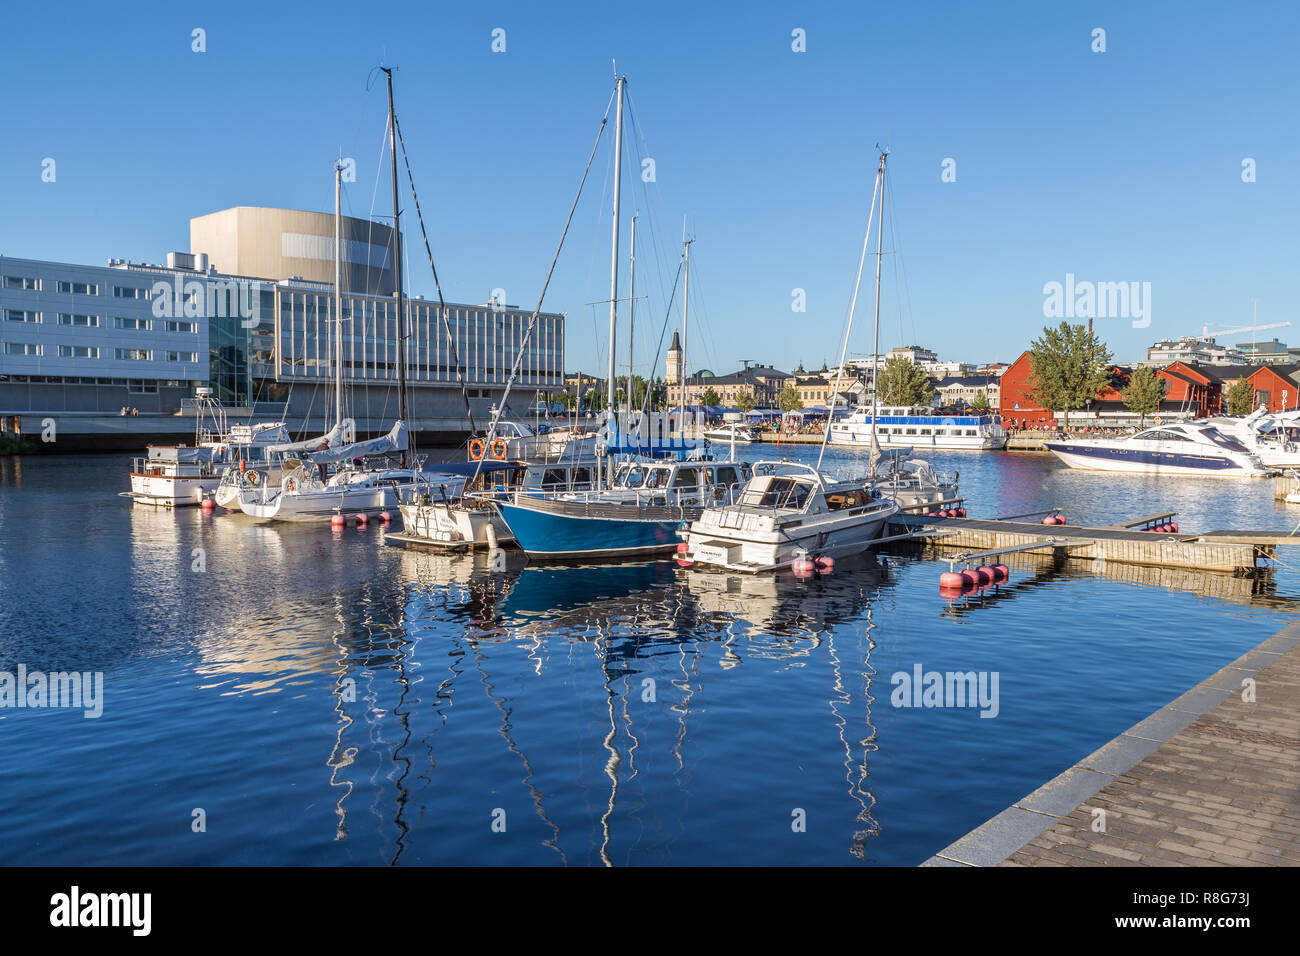 OULU, FINLAND - JULY 21, 2016: Harbor in the center of Oulu Finland during an sunny summer evening. - Stock Image